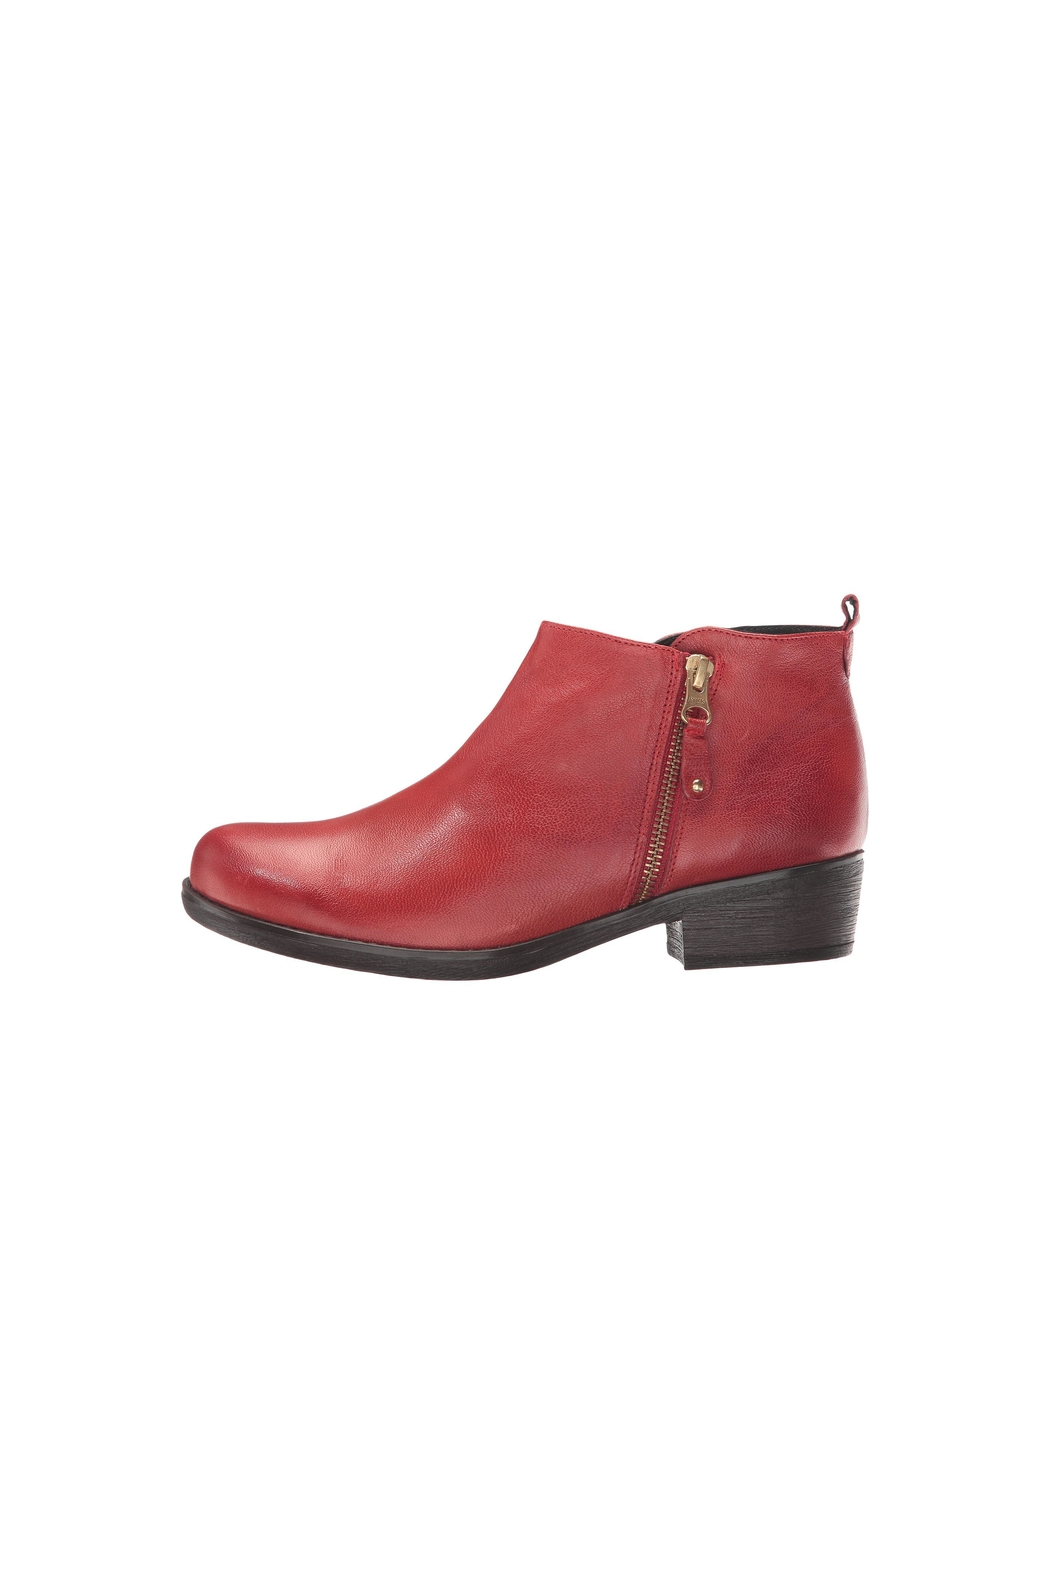 Eric Michael London Designer Bootie - Front Cropped Image